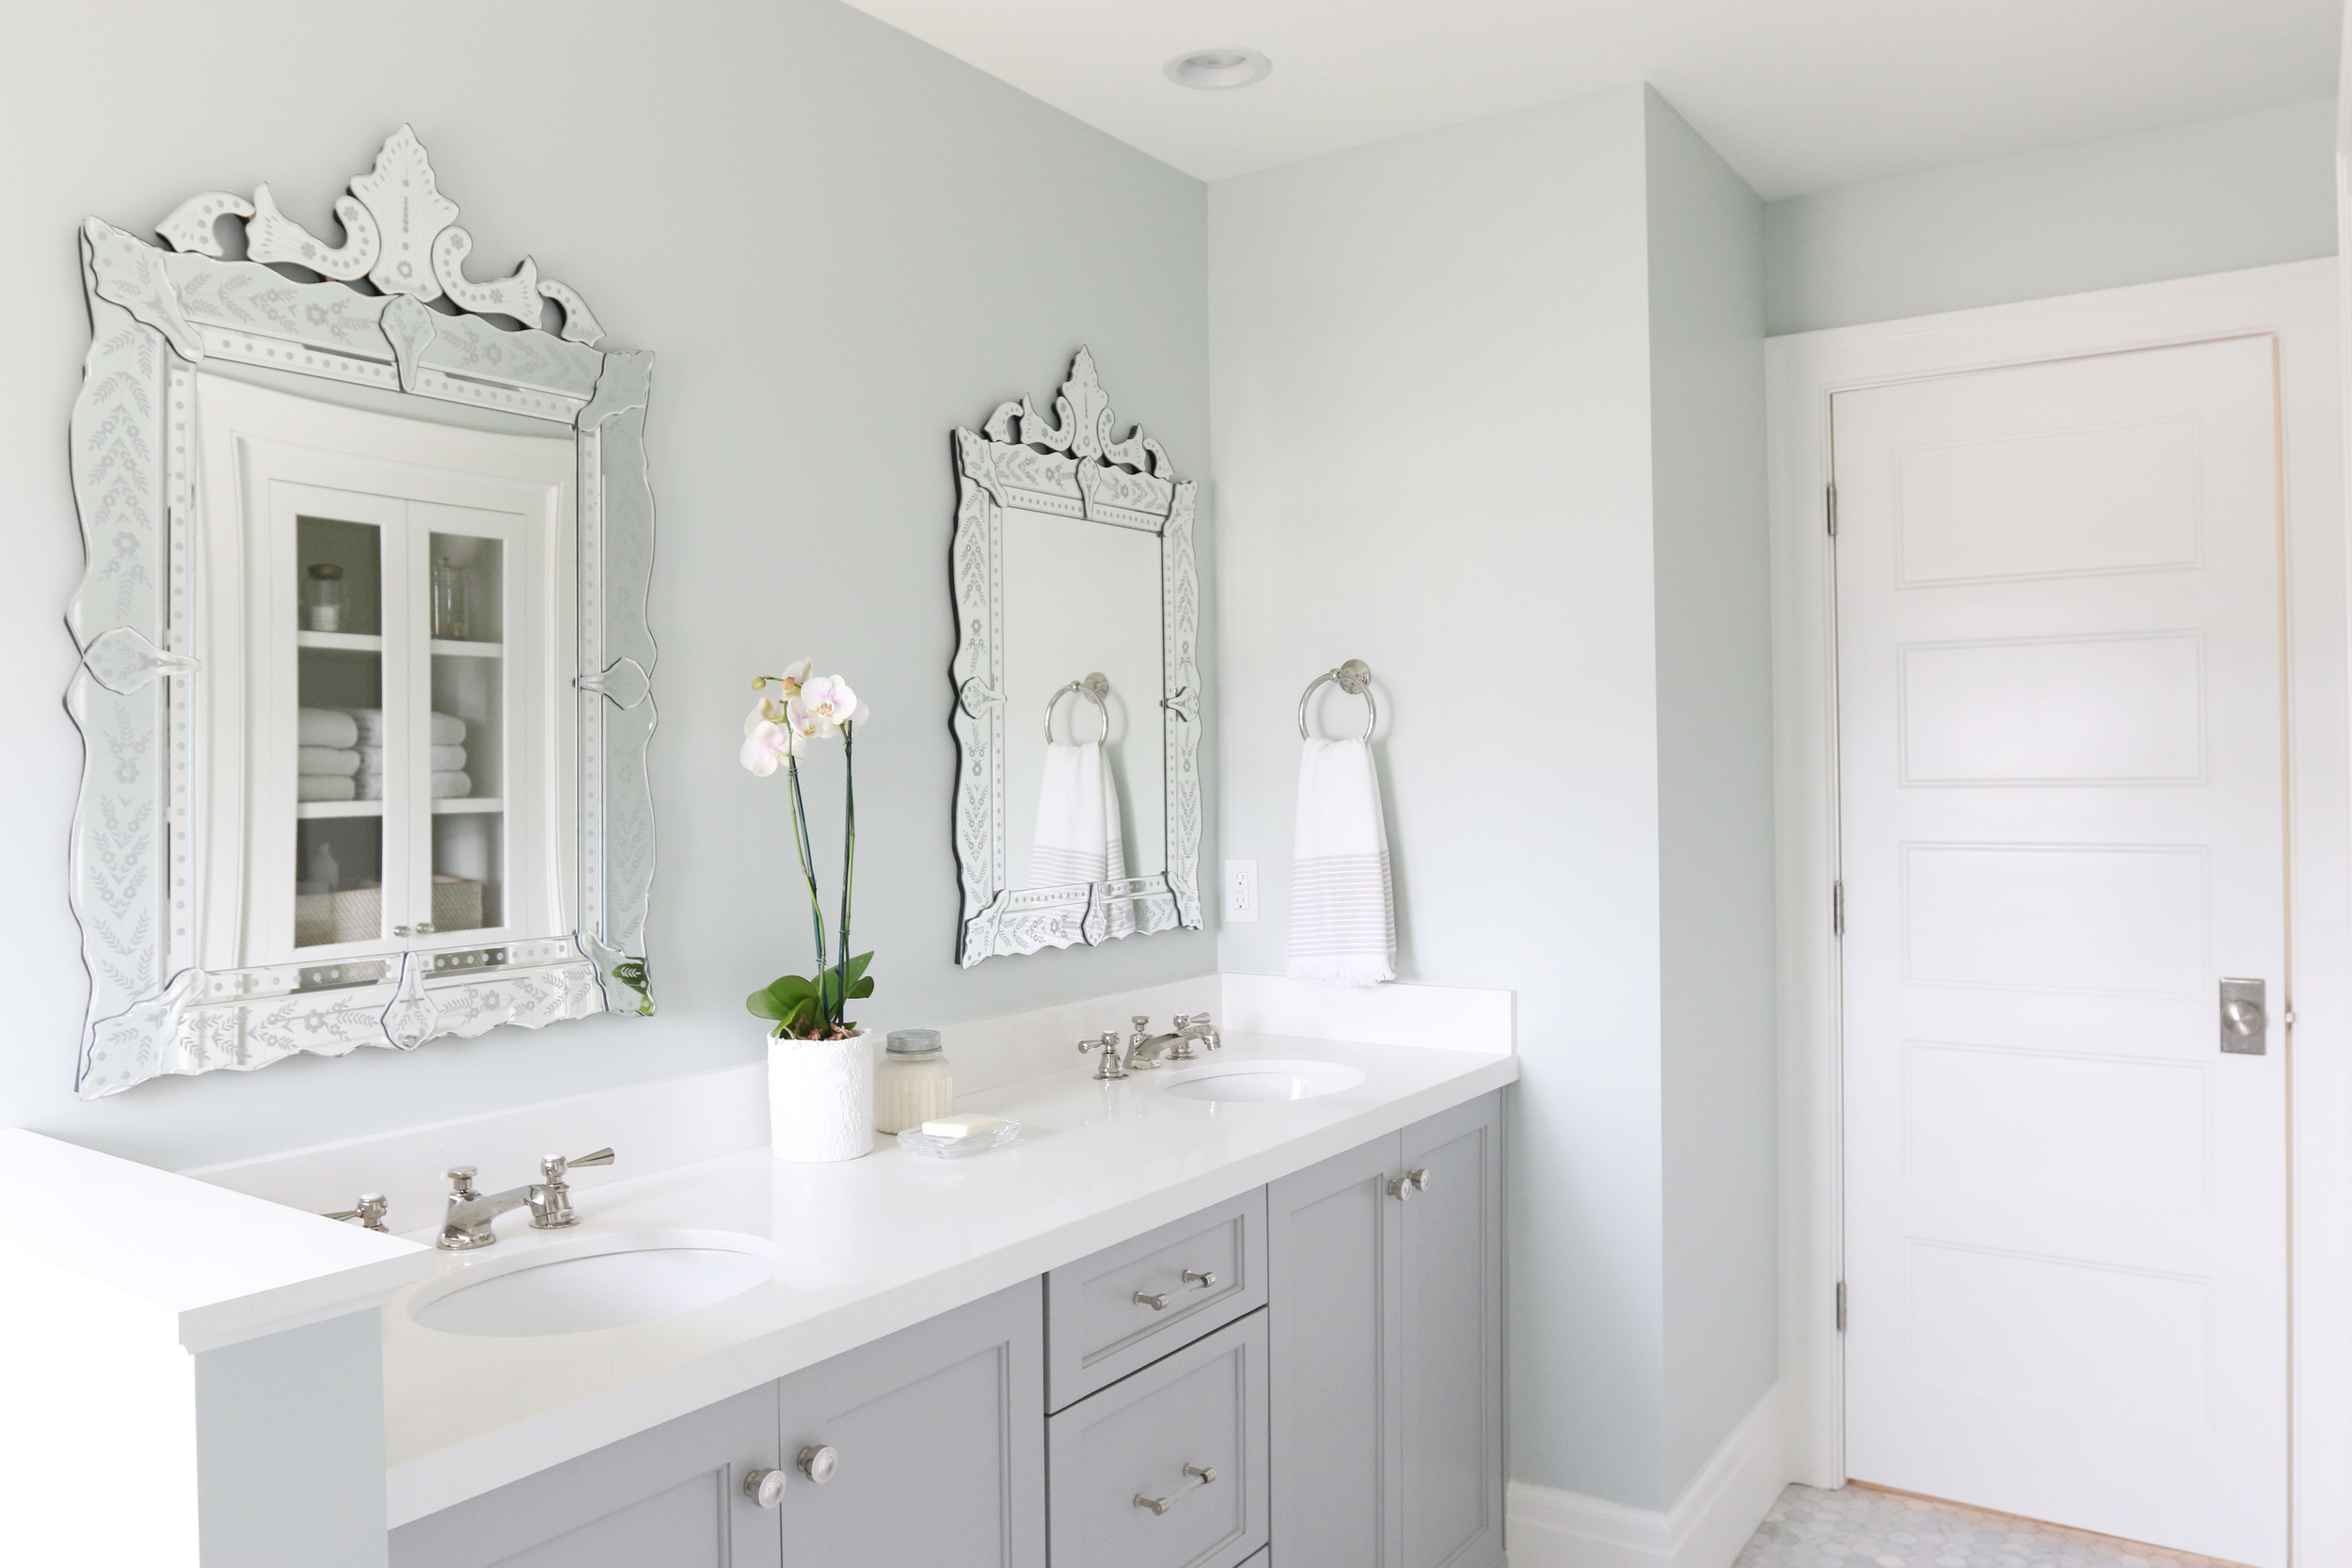 Coventry Gray Cabinets and Venetian Mirrors || Studio McGee